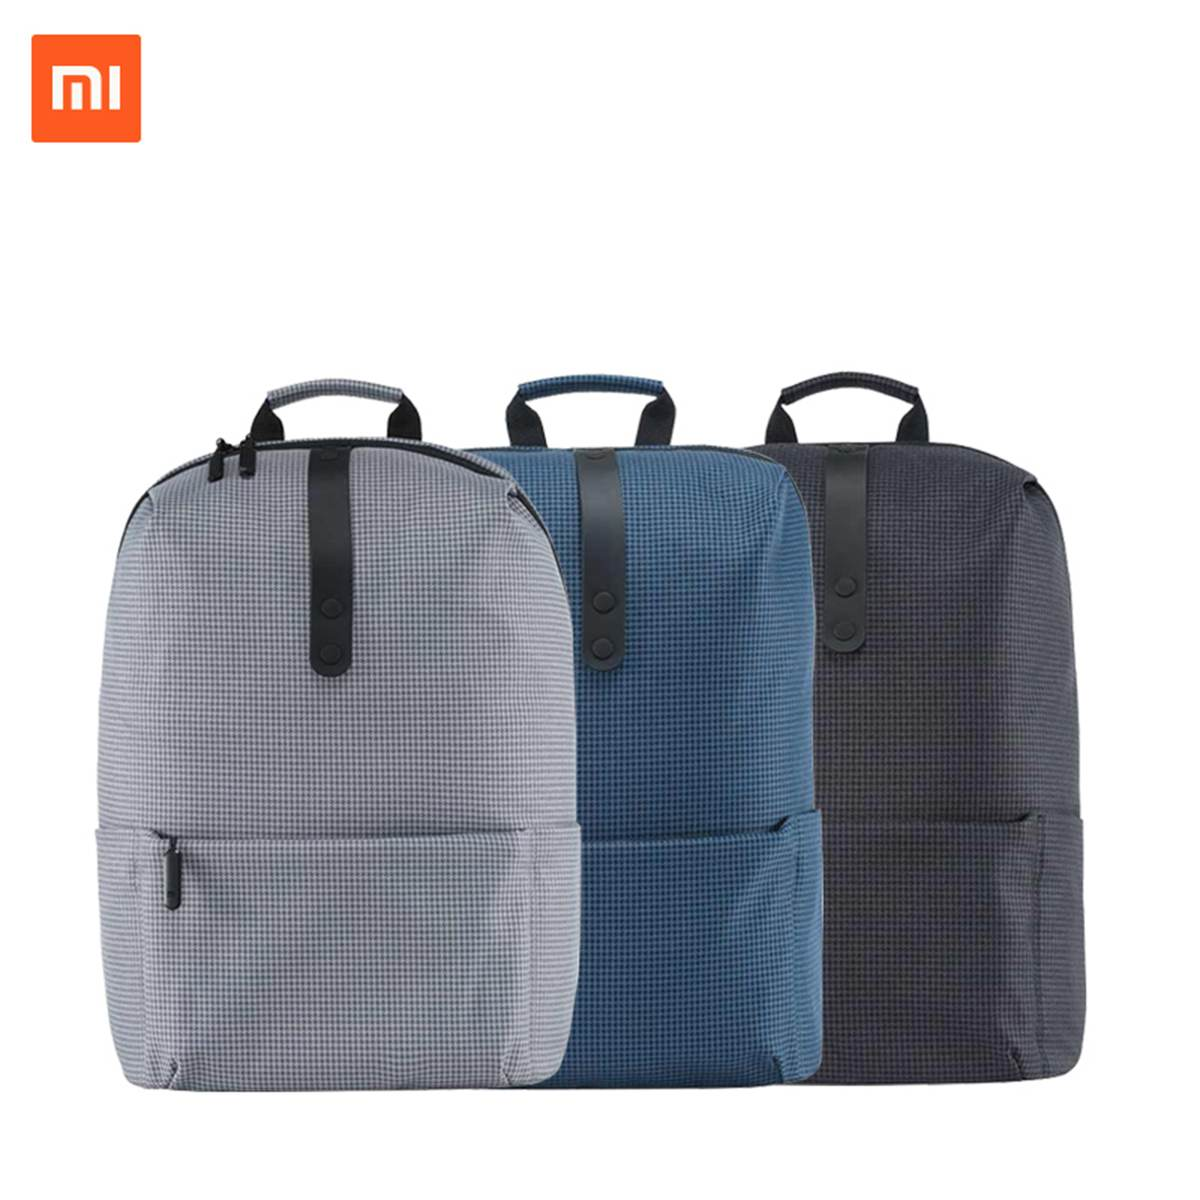 Xiaomi Fashion Backpack 15.6 Inch 20L College Style School Bag Laptop Computer Backpack for Women Men Boy Girl image